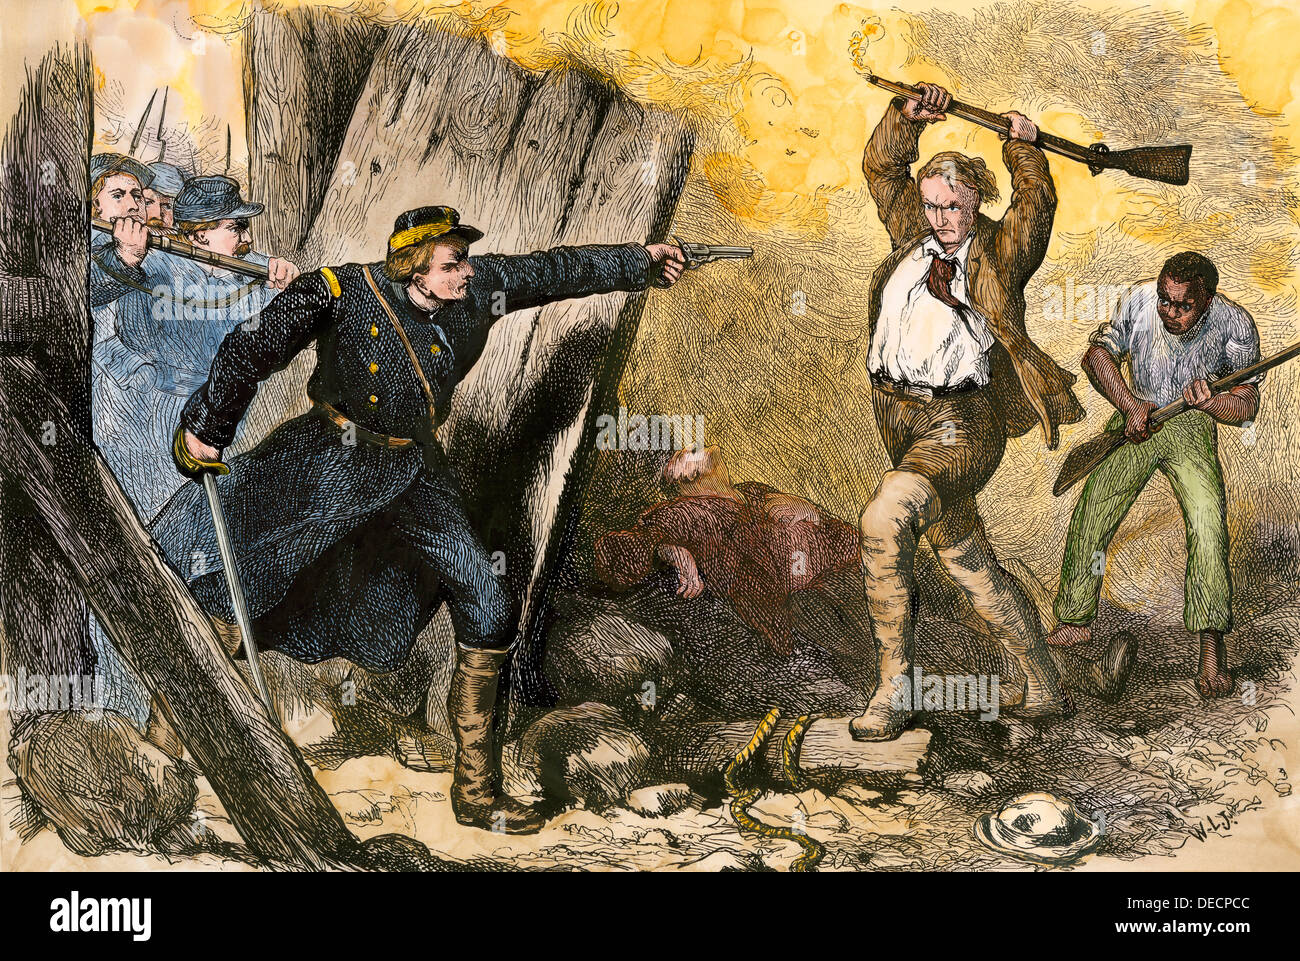 Capture of John Brown in his barricade in Harper's Ferry, West Virginia, 1859. Hand-colored woodcut - Stock Image